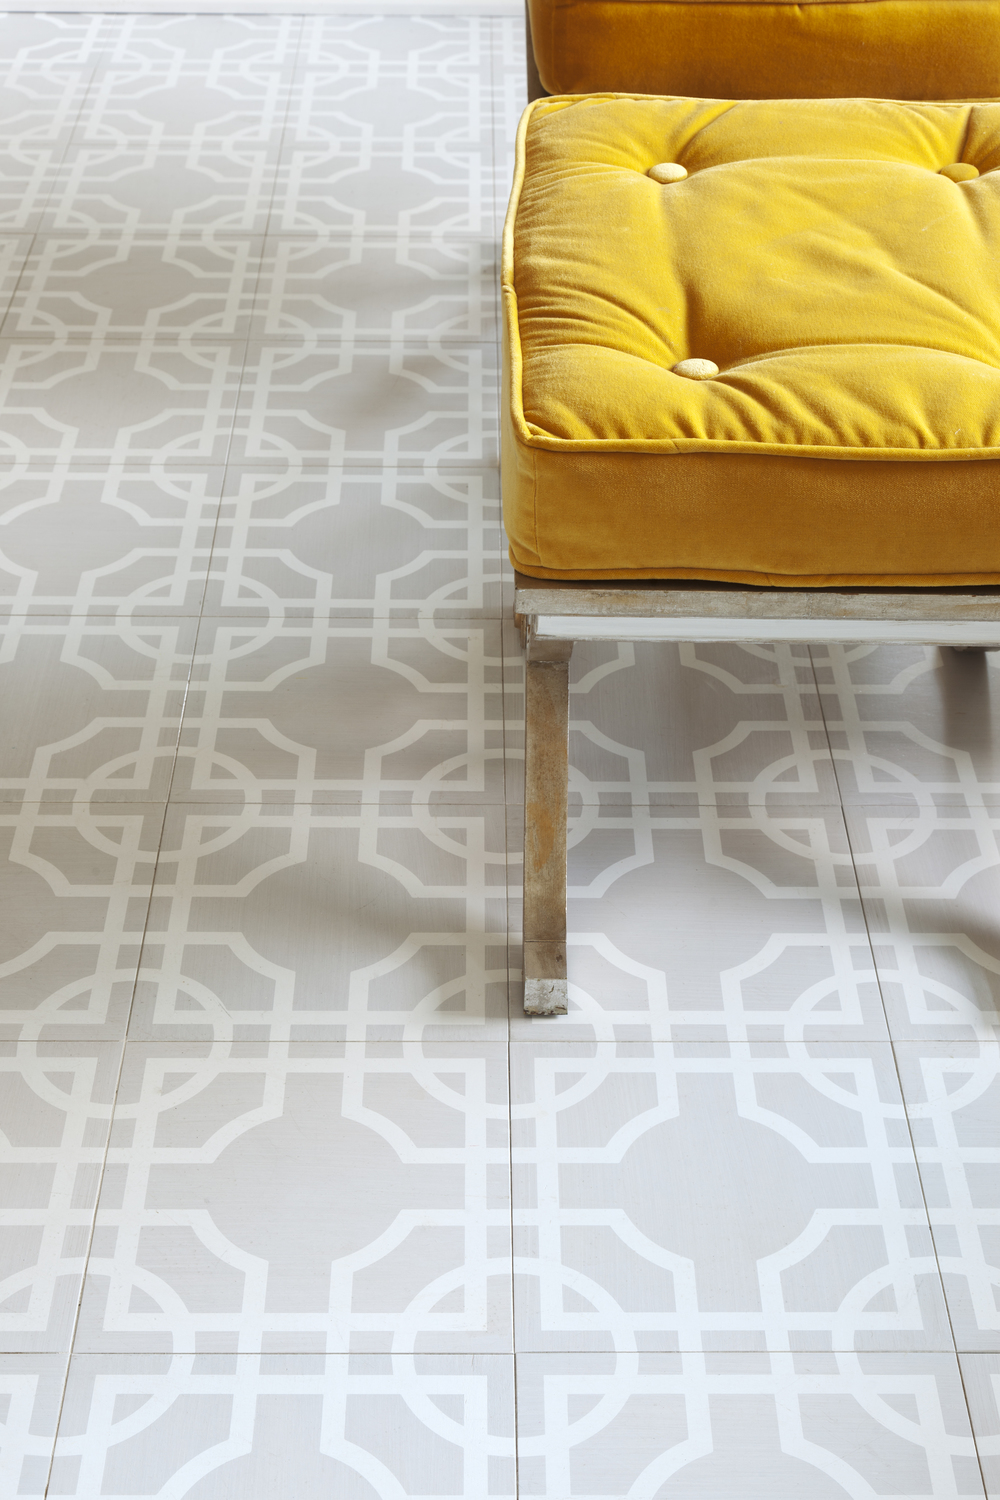 Our Grey and White Macau Pattern in 12x12 Wood Tiles